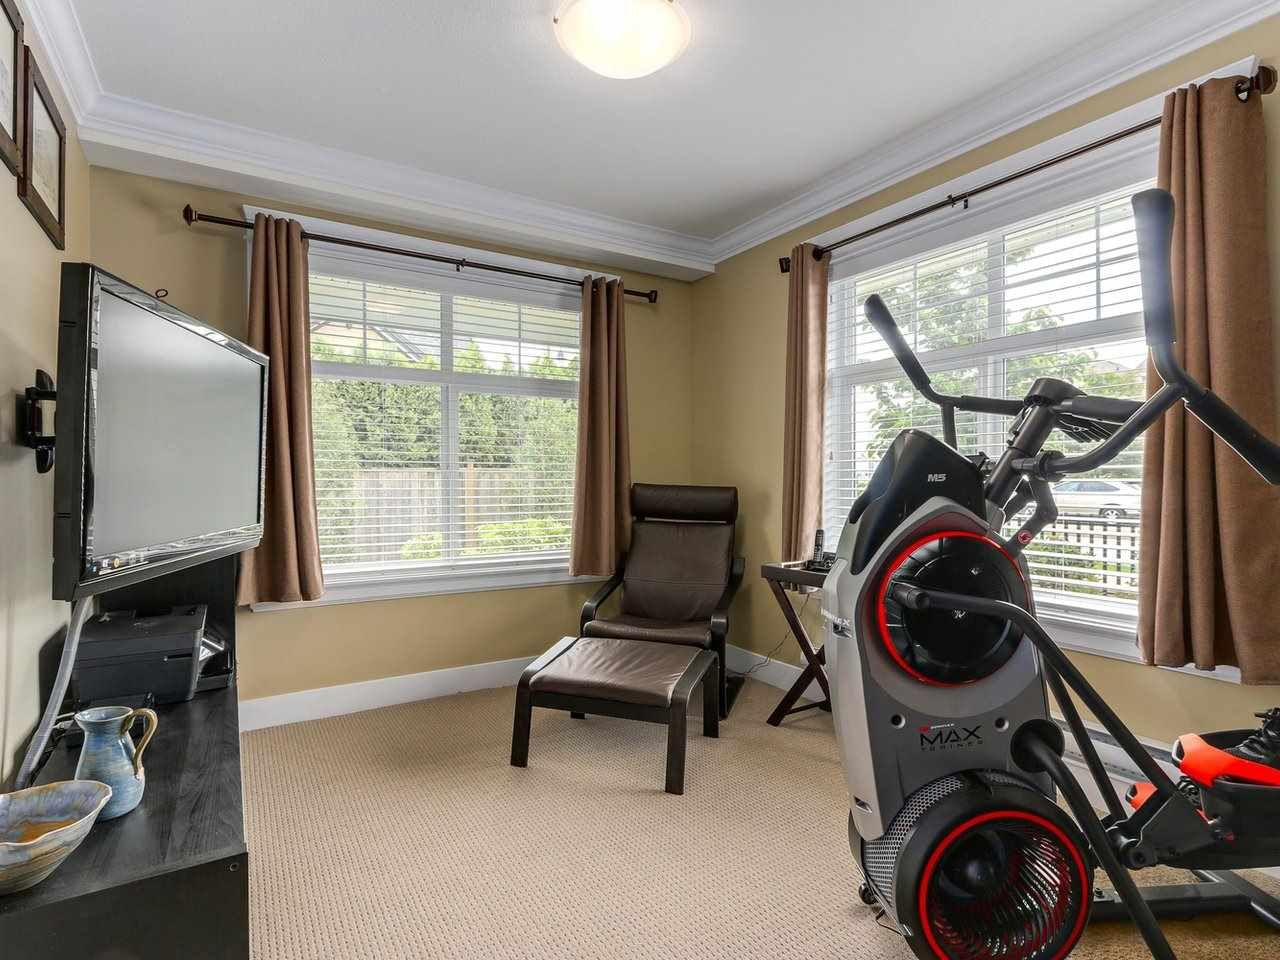 """Photo 15: Photos: 31 17171 2B Avenue in Surrey: Pacific Douglas Townhouse for sale in """"AUGUSTA TOWNHOUSES"""" (South Surrey White Rock)  : MLS®# R2280398"""